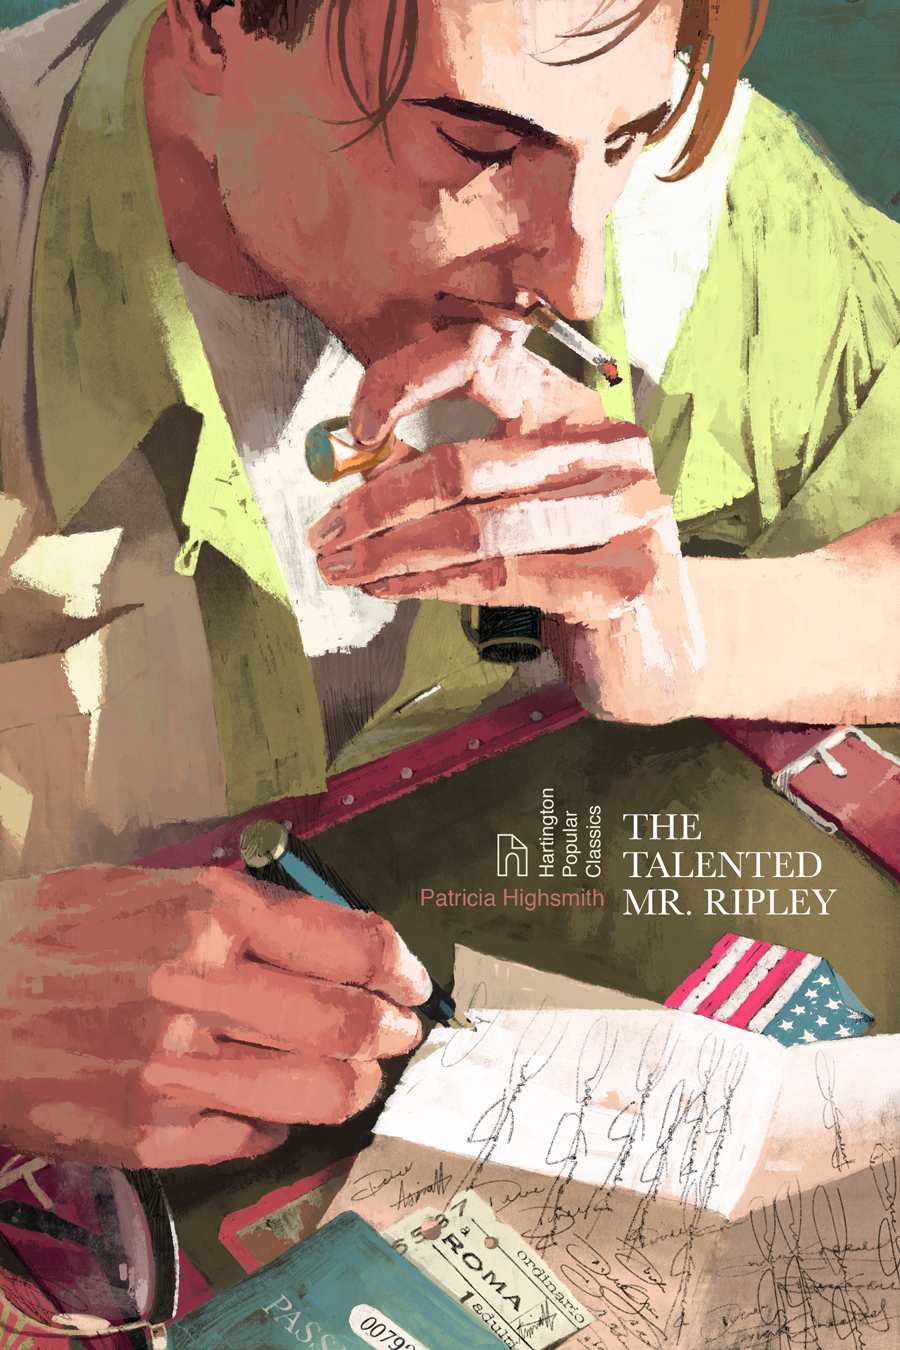 The Talented Mr. Ripley Book Cover by Marc Aspinall